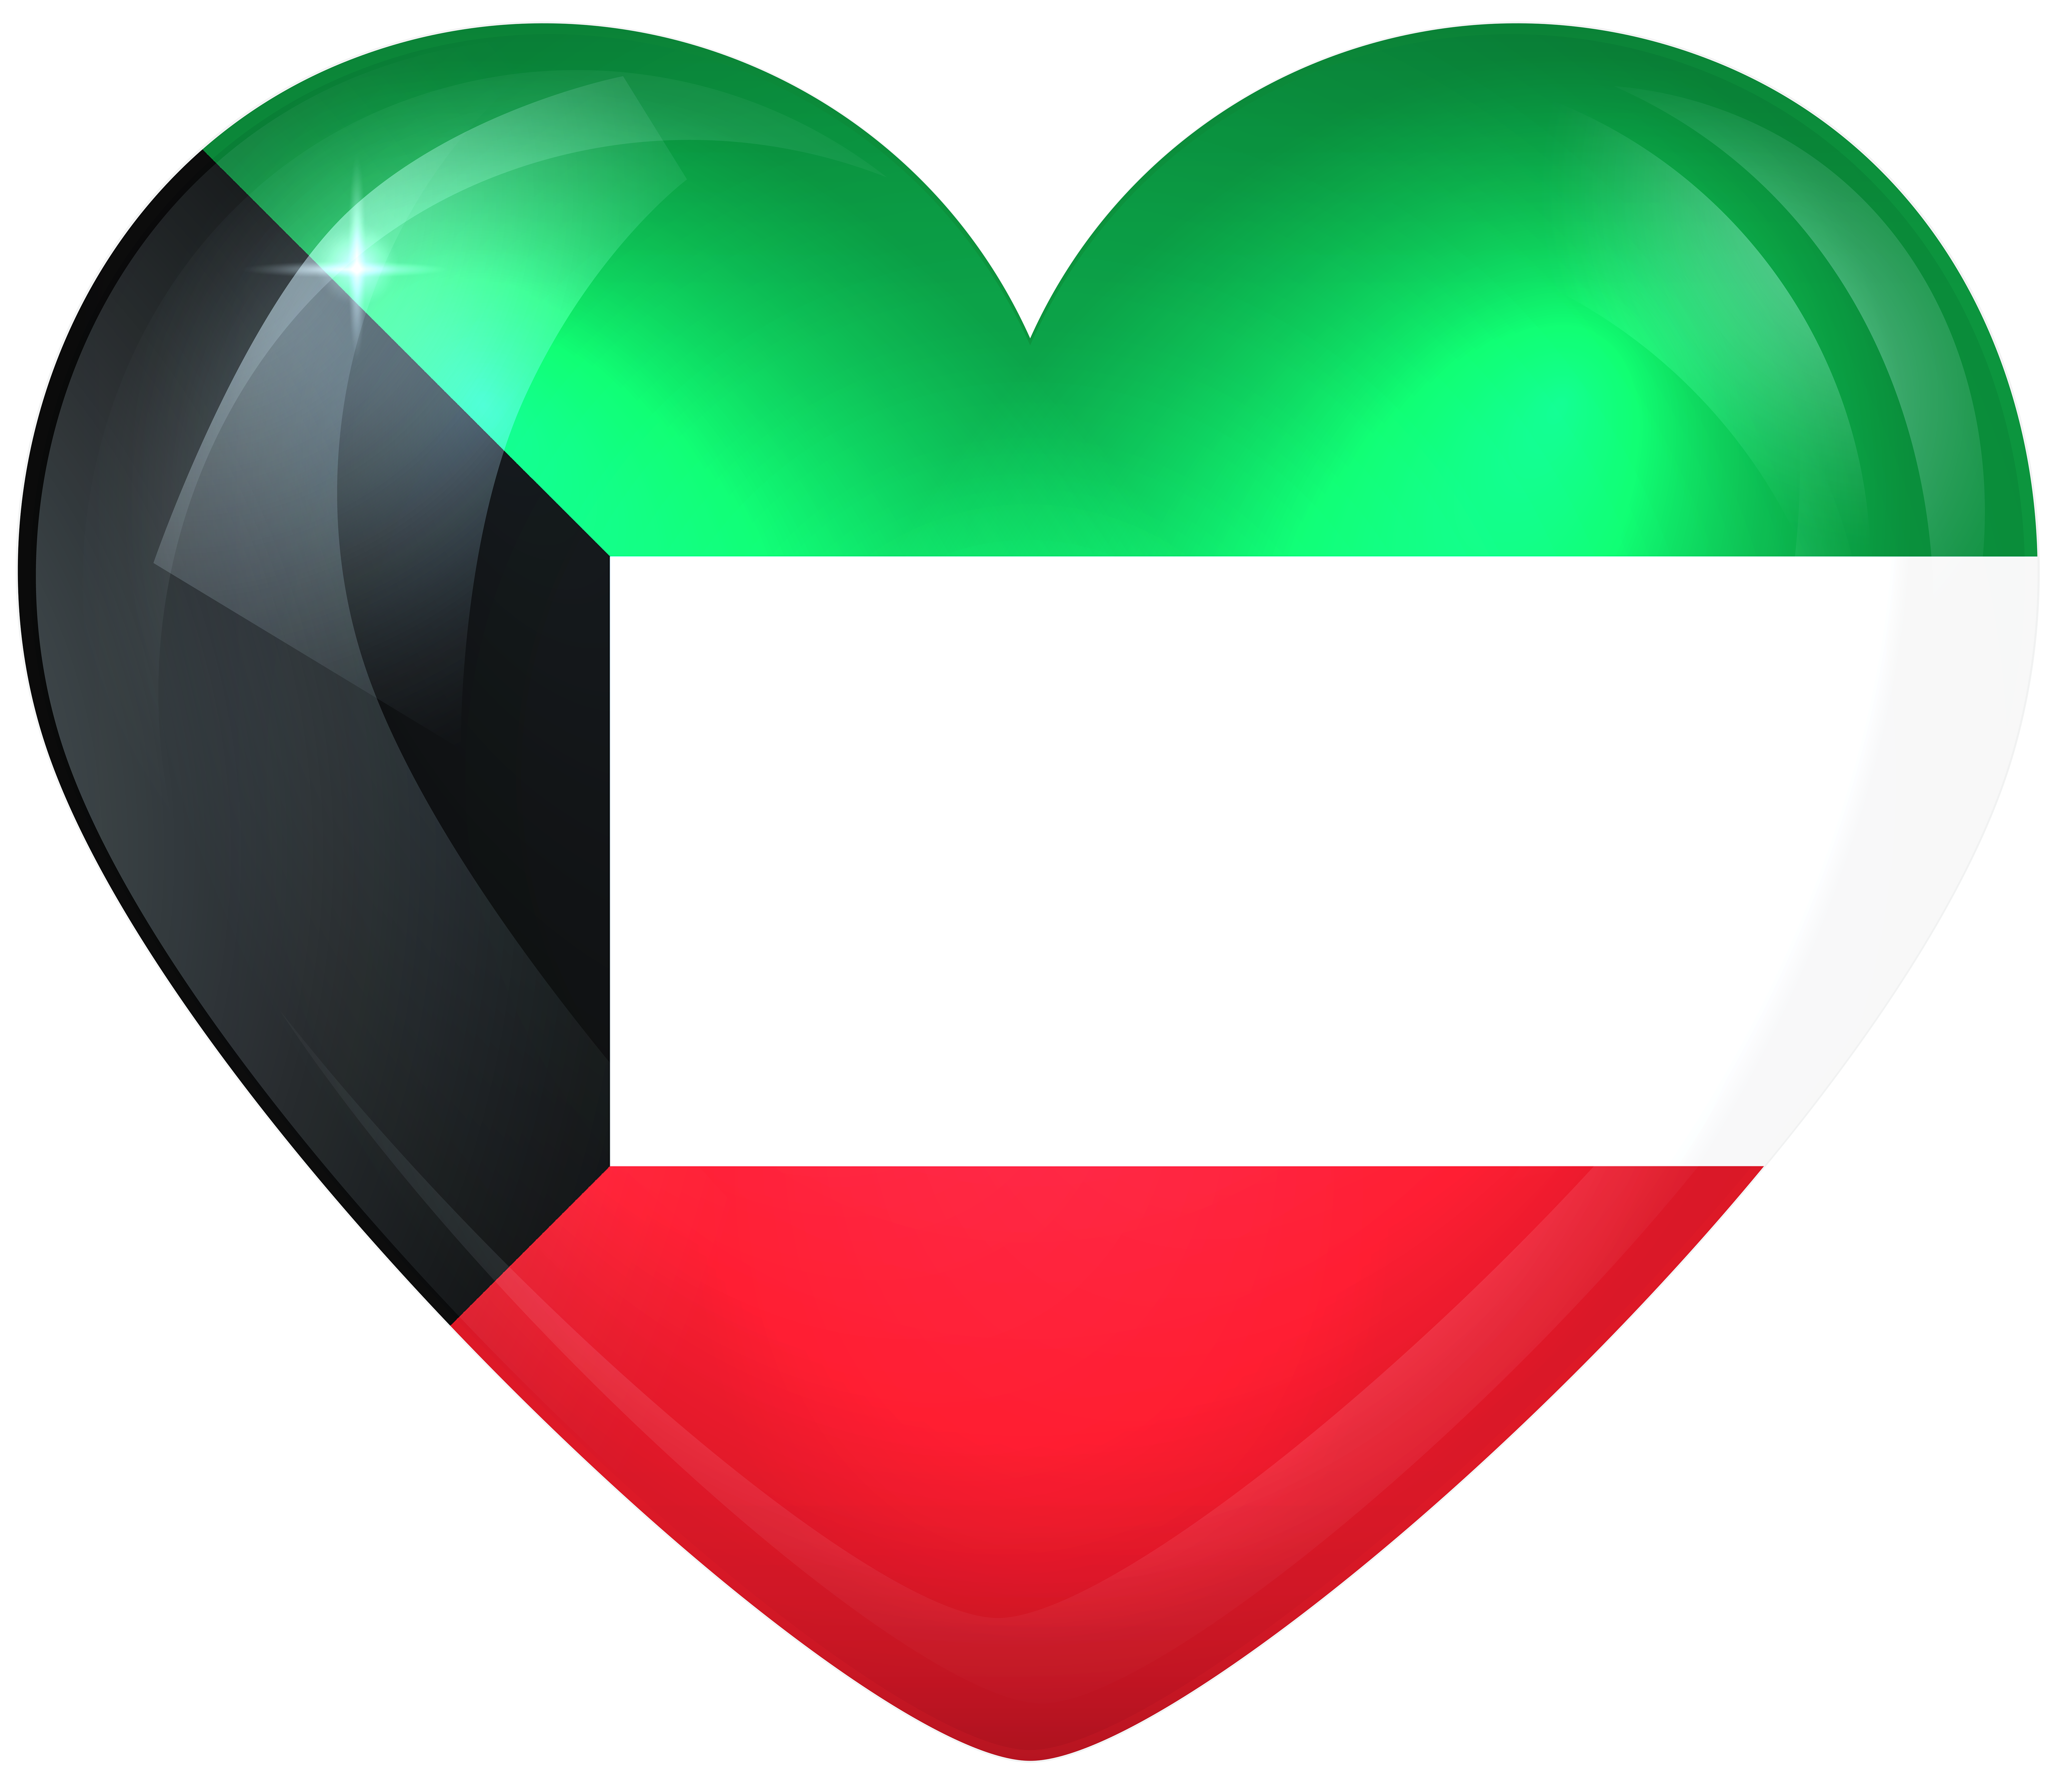 Mint heart png. Images of borders flags